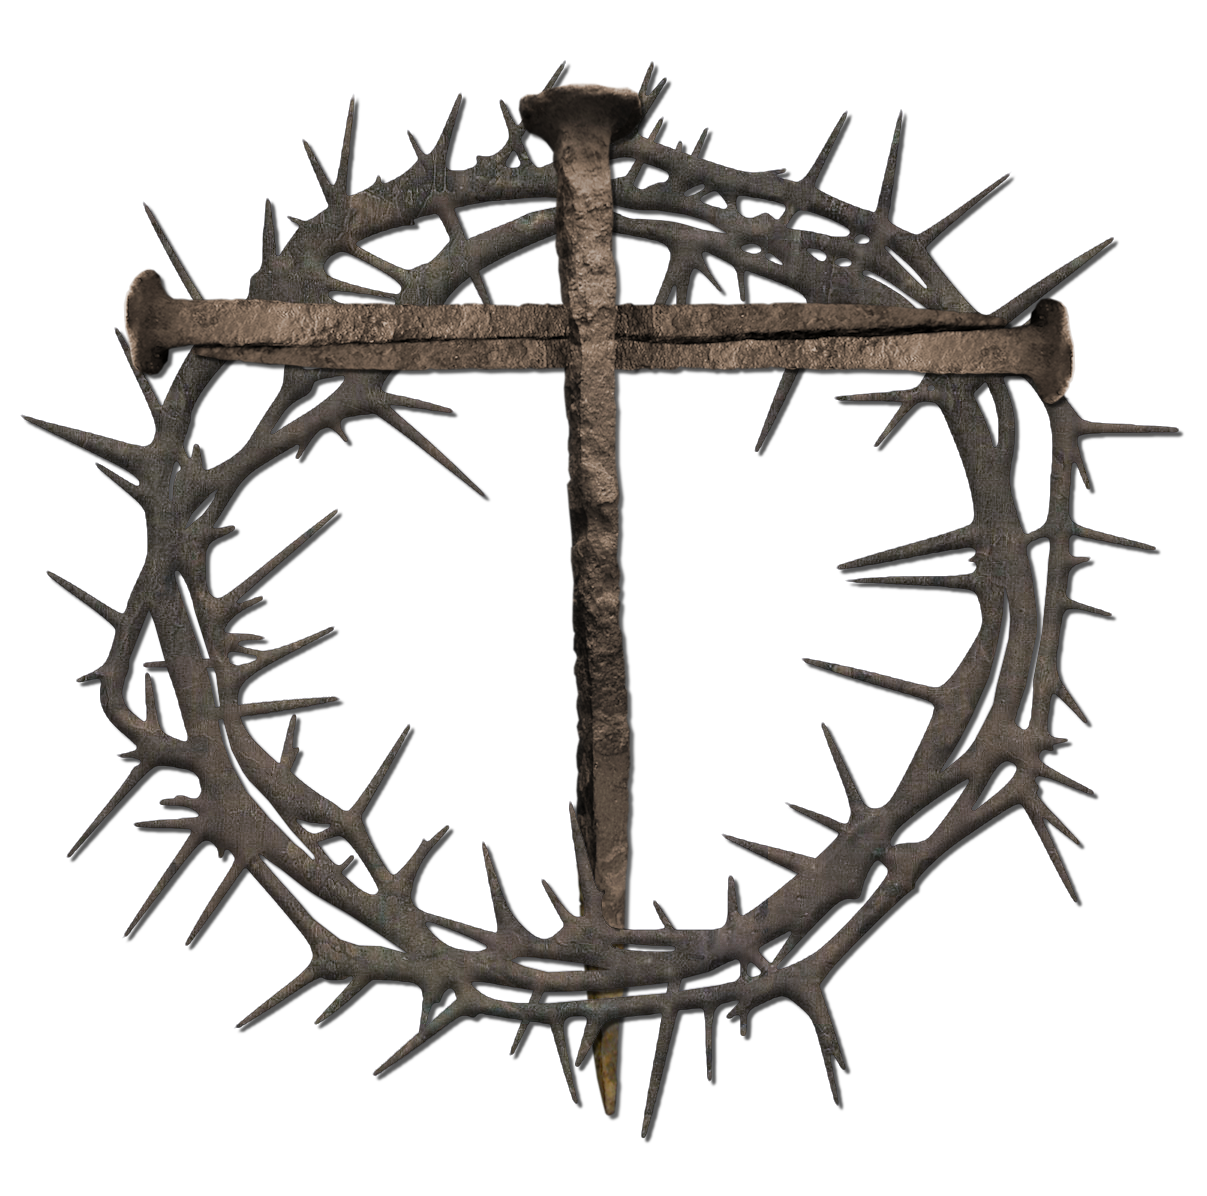 Crown of thorns on cross png. File bing images pictures